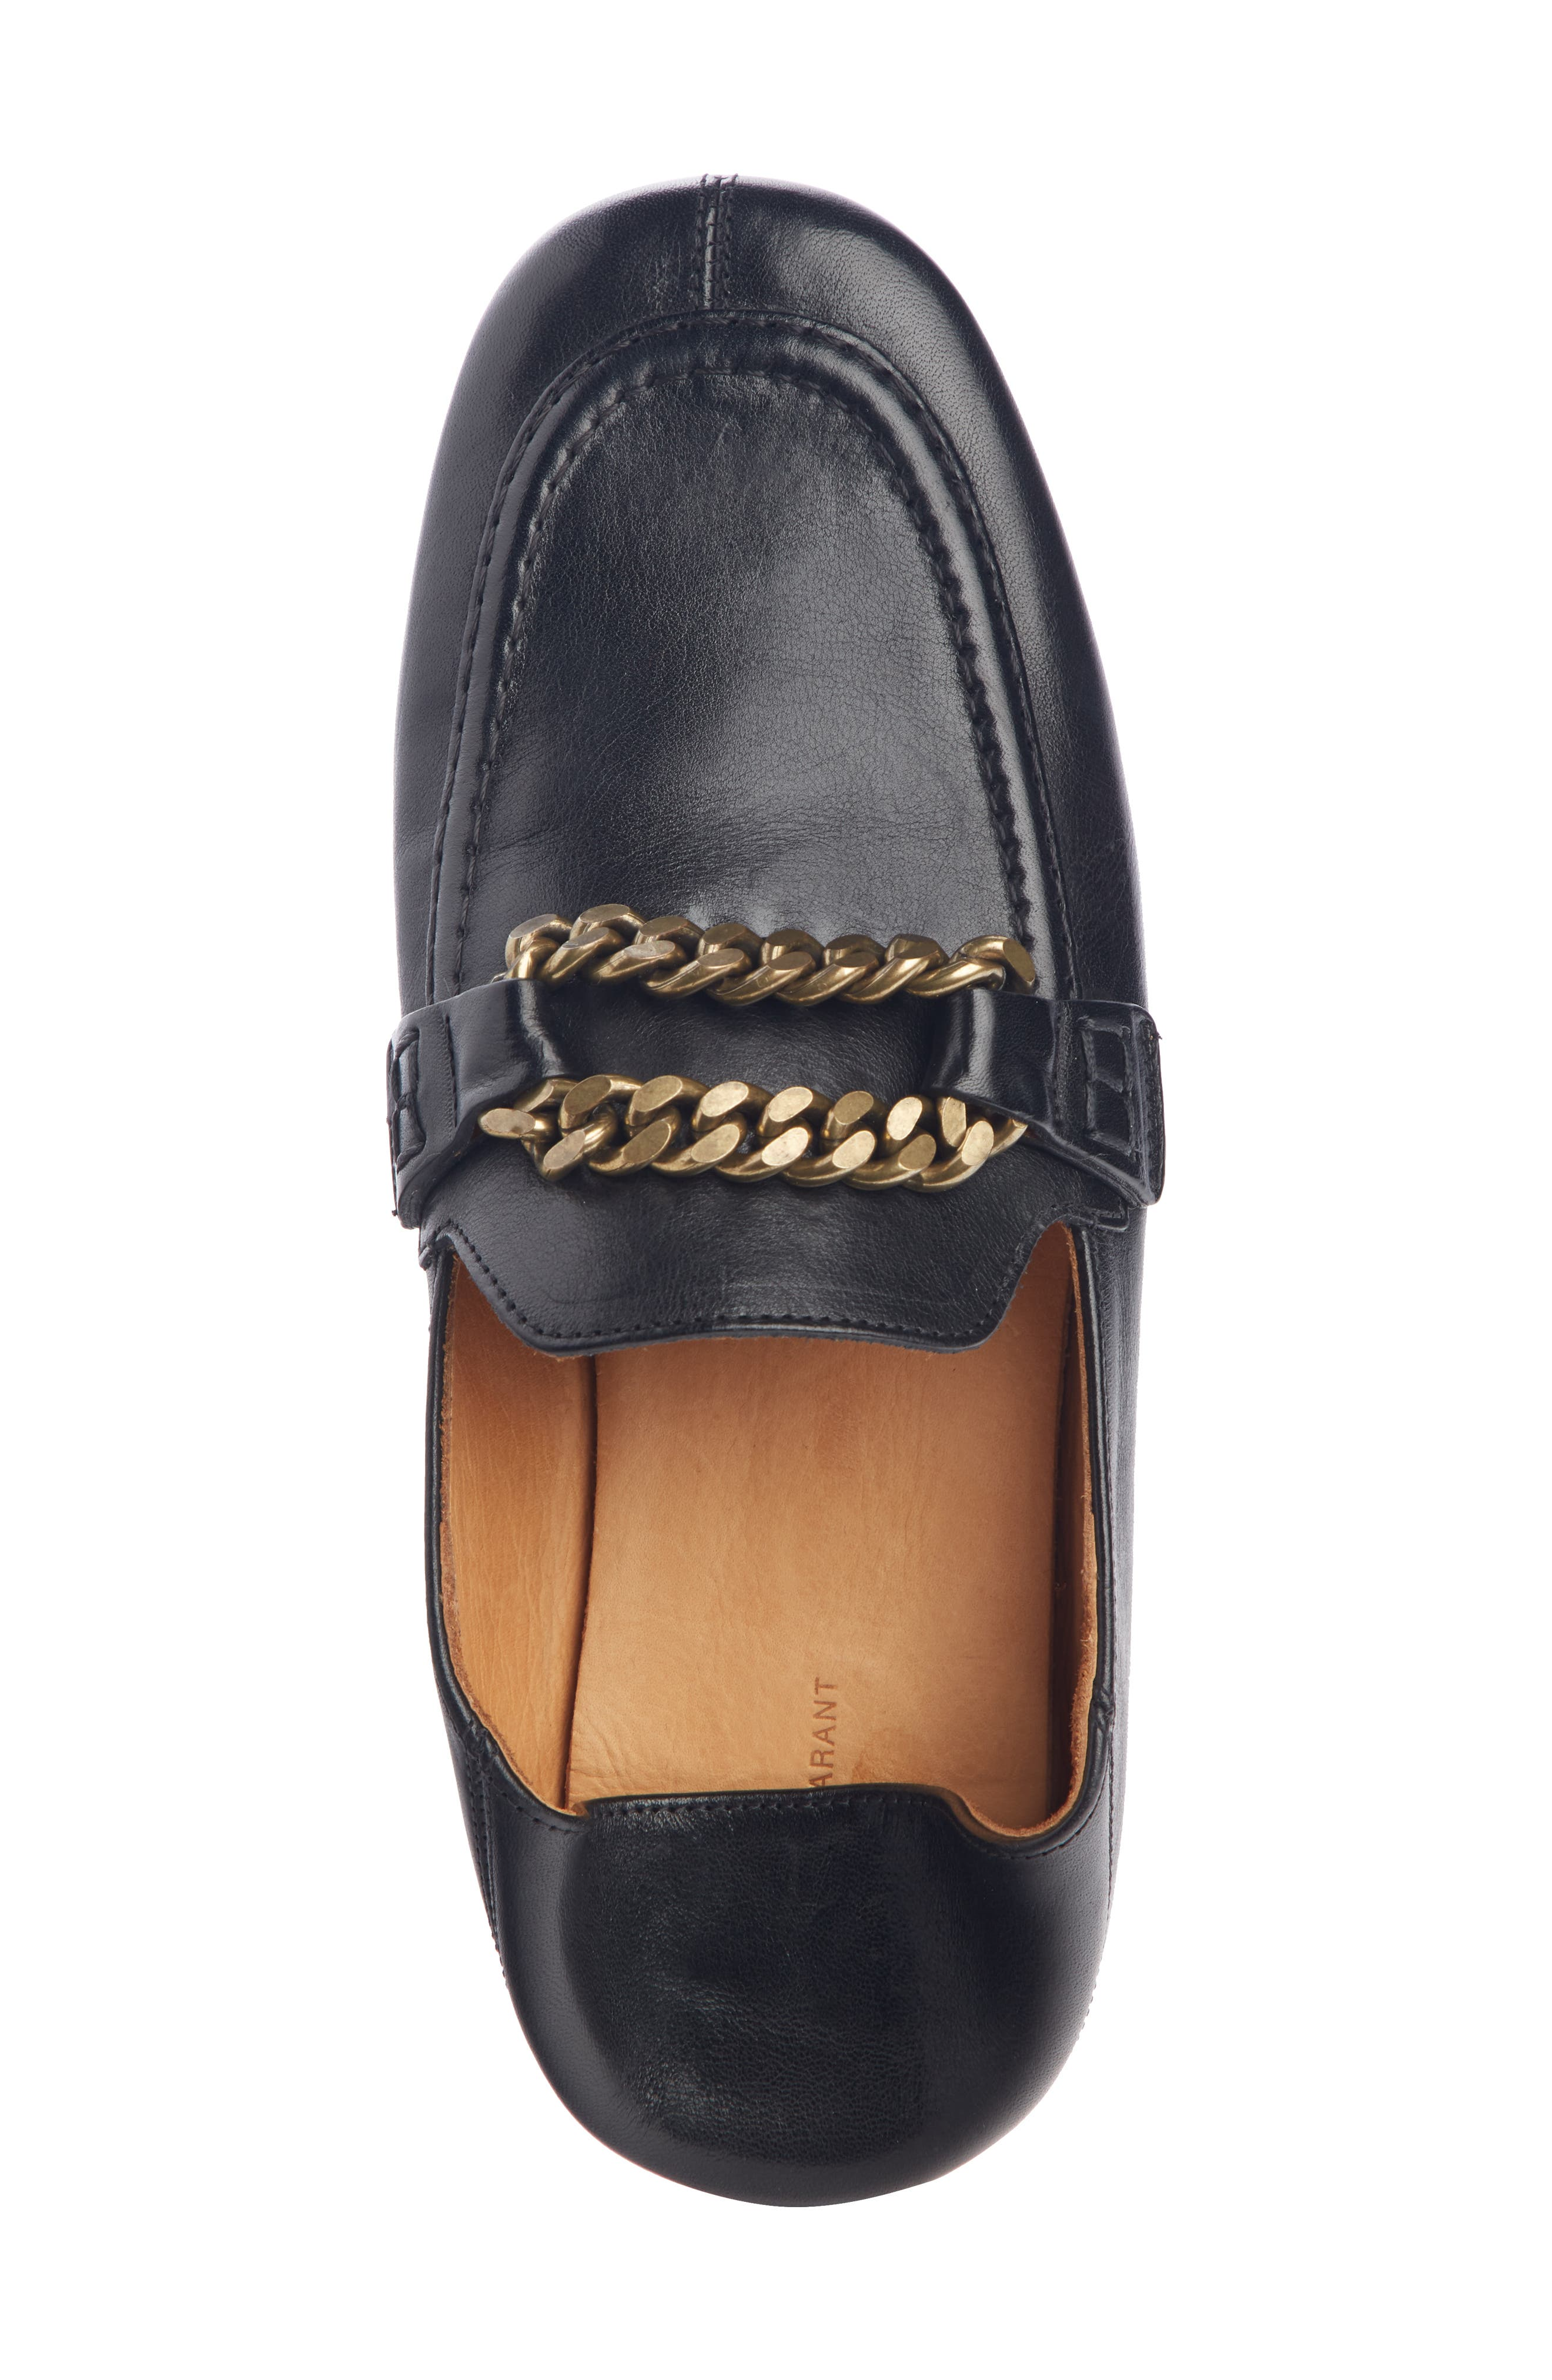 ISABEL MARANT,                             Firlee Chain Convertible Loafer,                             Alternate thumbnail 5, color,                             BLACK